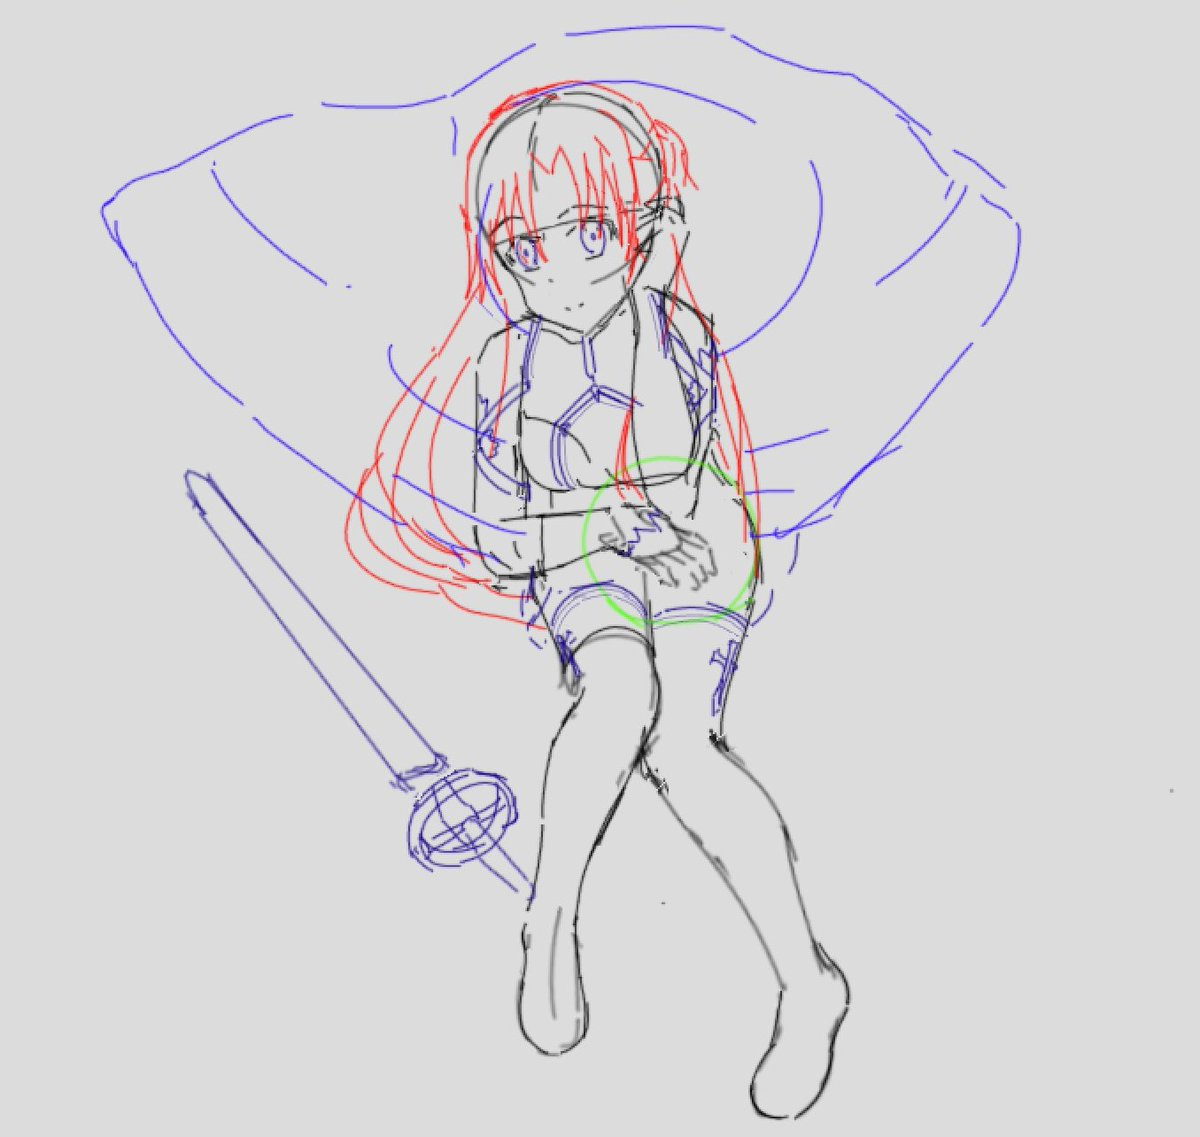 Asuna Yuuki copy study in Drawpile Many thanks to Suzuki Gou for illustrating the reference picture. I was not able to copy it well, as my foreshortening and perspective are definitely off #SAO #Asuna #SwordArtOnline  #SAO好きな人RT #ソードアートオンライン #絵描きさんと繋がりたい